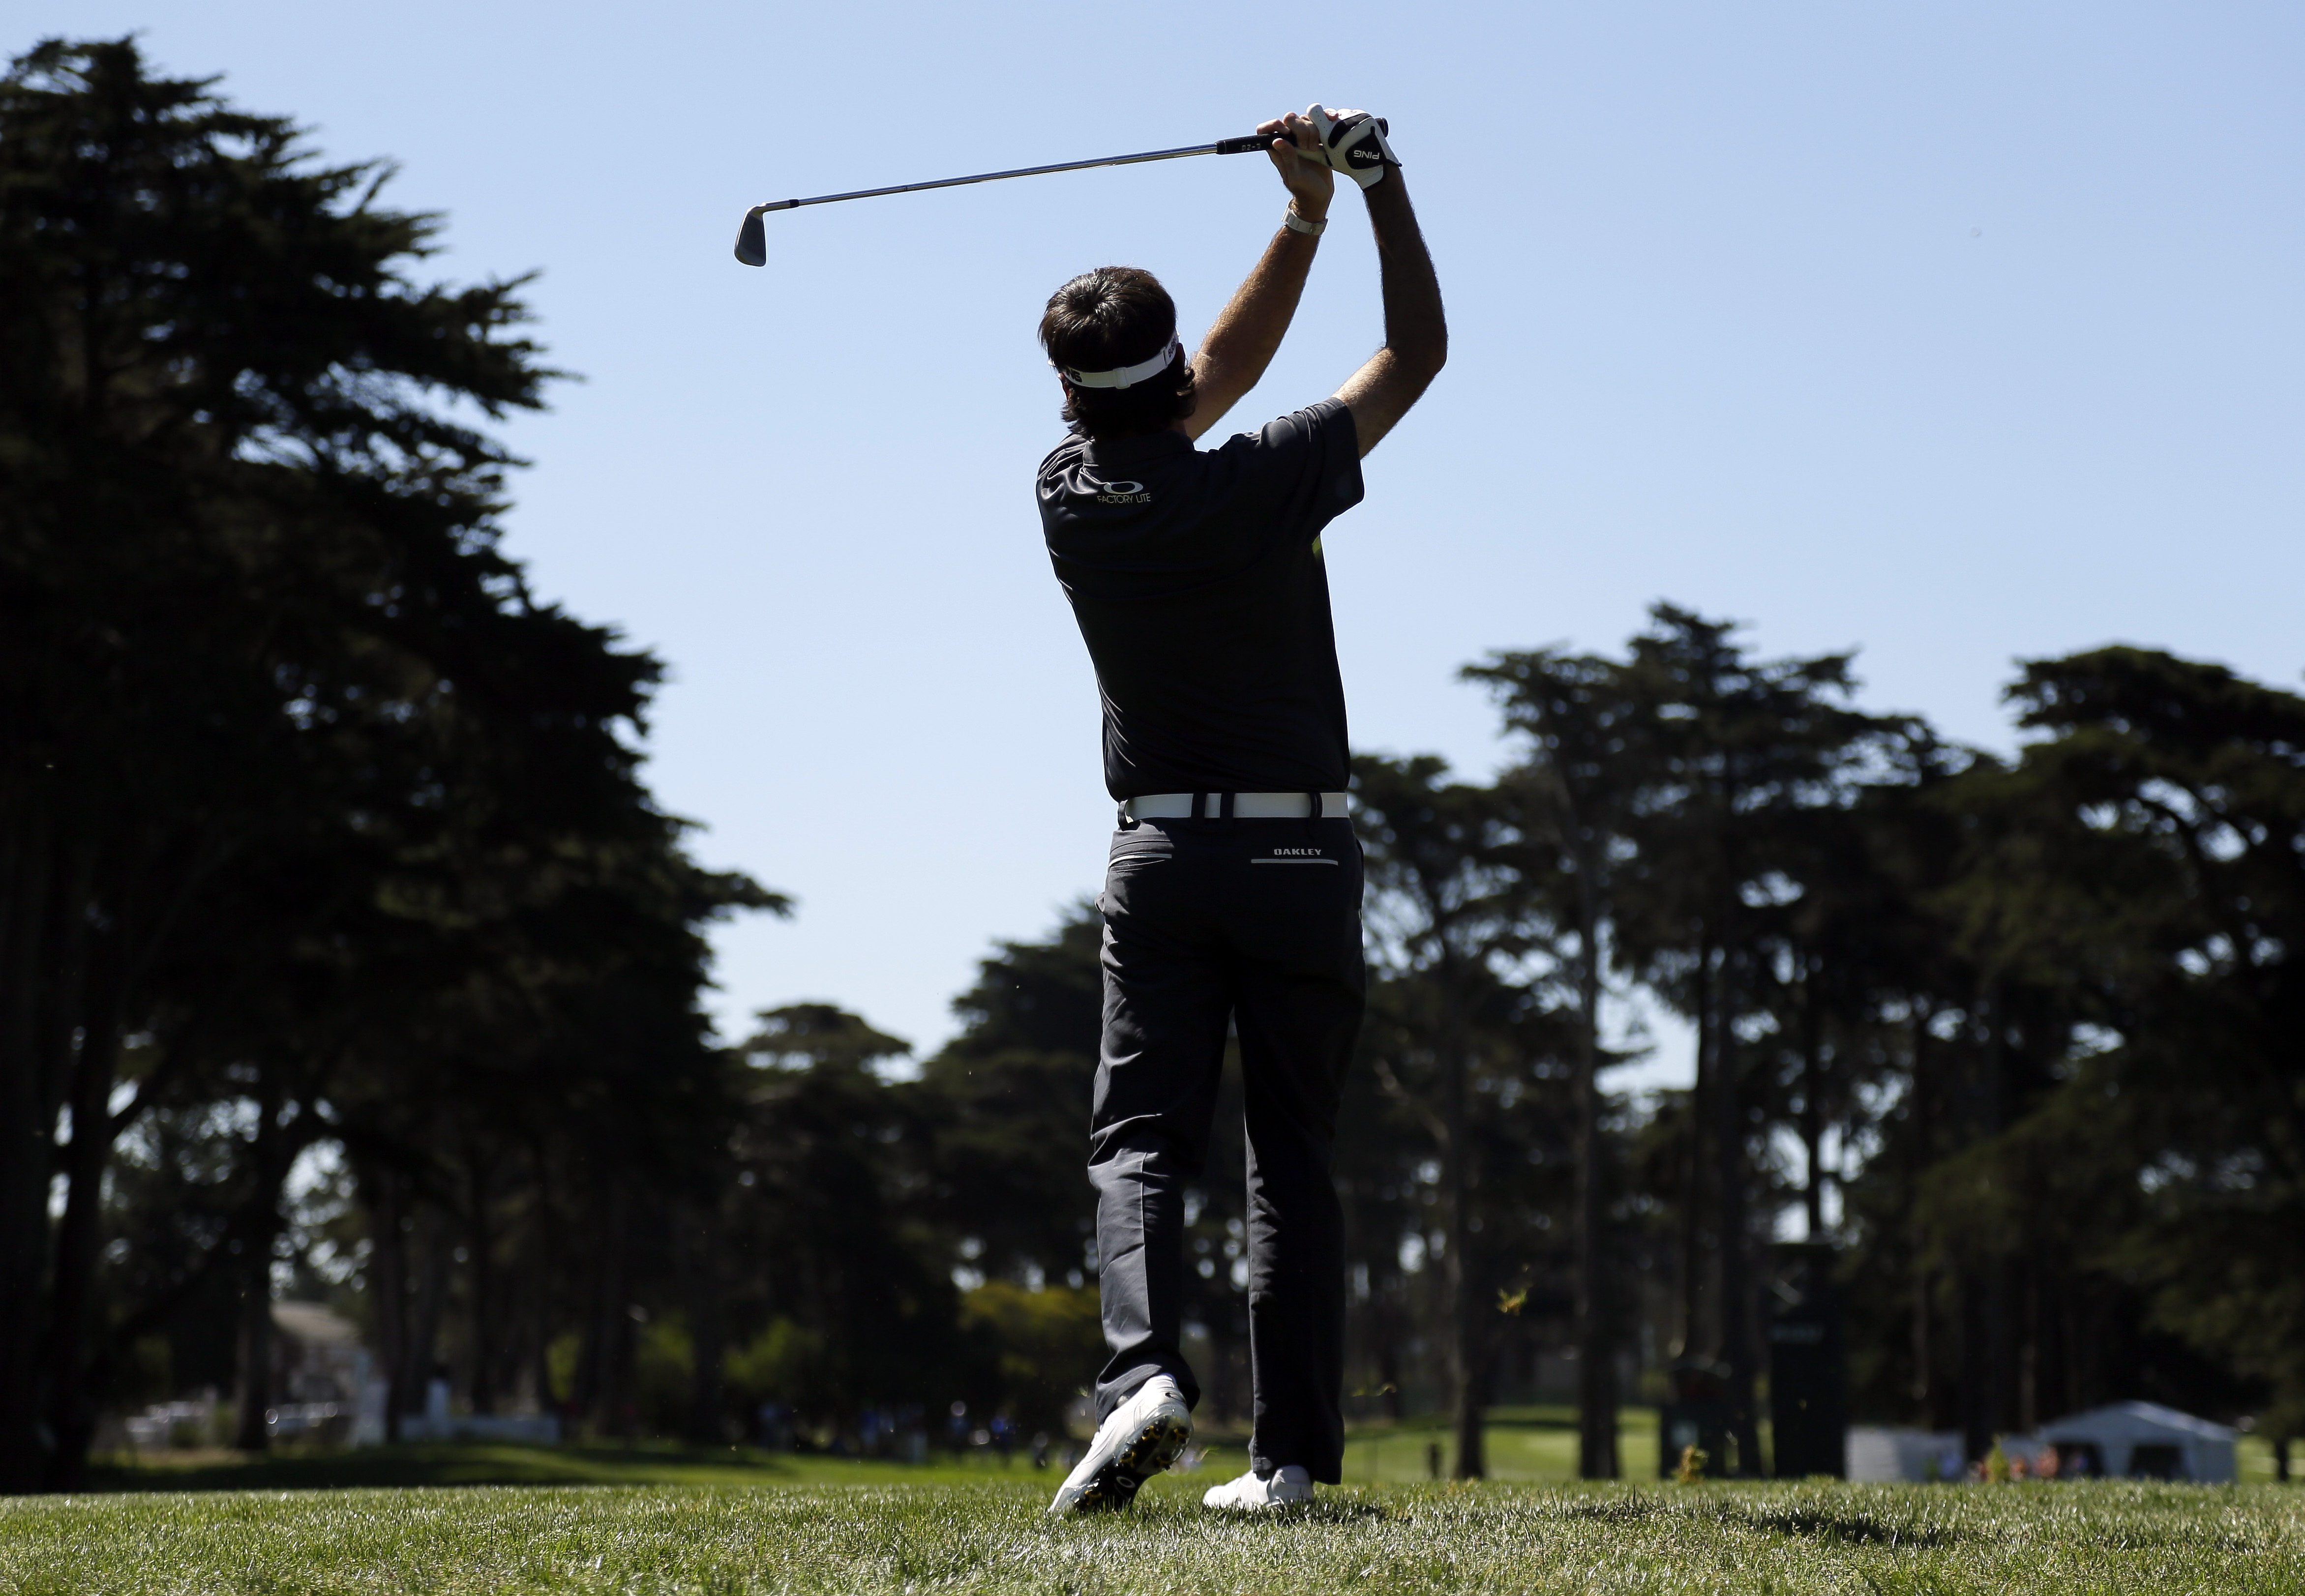 Bubba Watson hits from the third fairway at the Match Play Championship golf tournament Thursday, April 30, 2015, in San Francisco. (AP Photo/Eric Risberg)